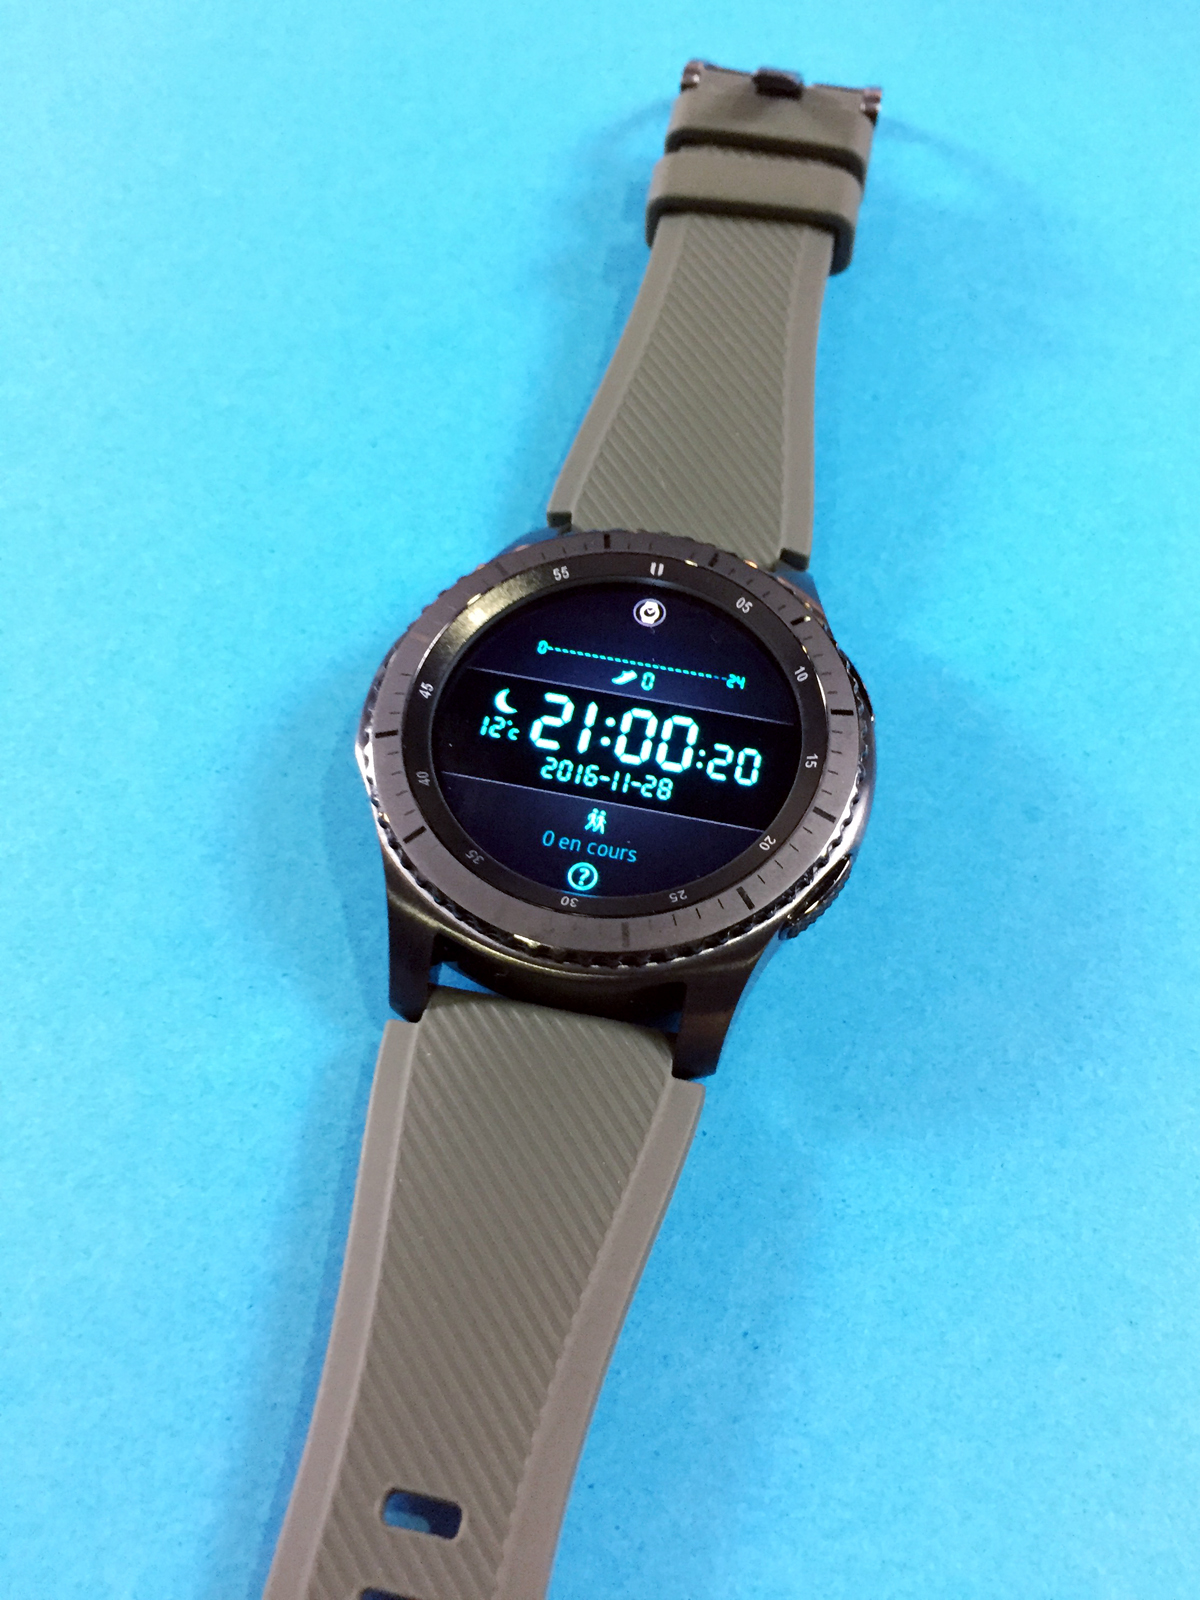 samsung-gear-s3-test-avix-pris-montre-connectee-photo-by-blog-united-states-of-paris